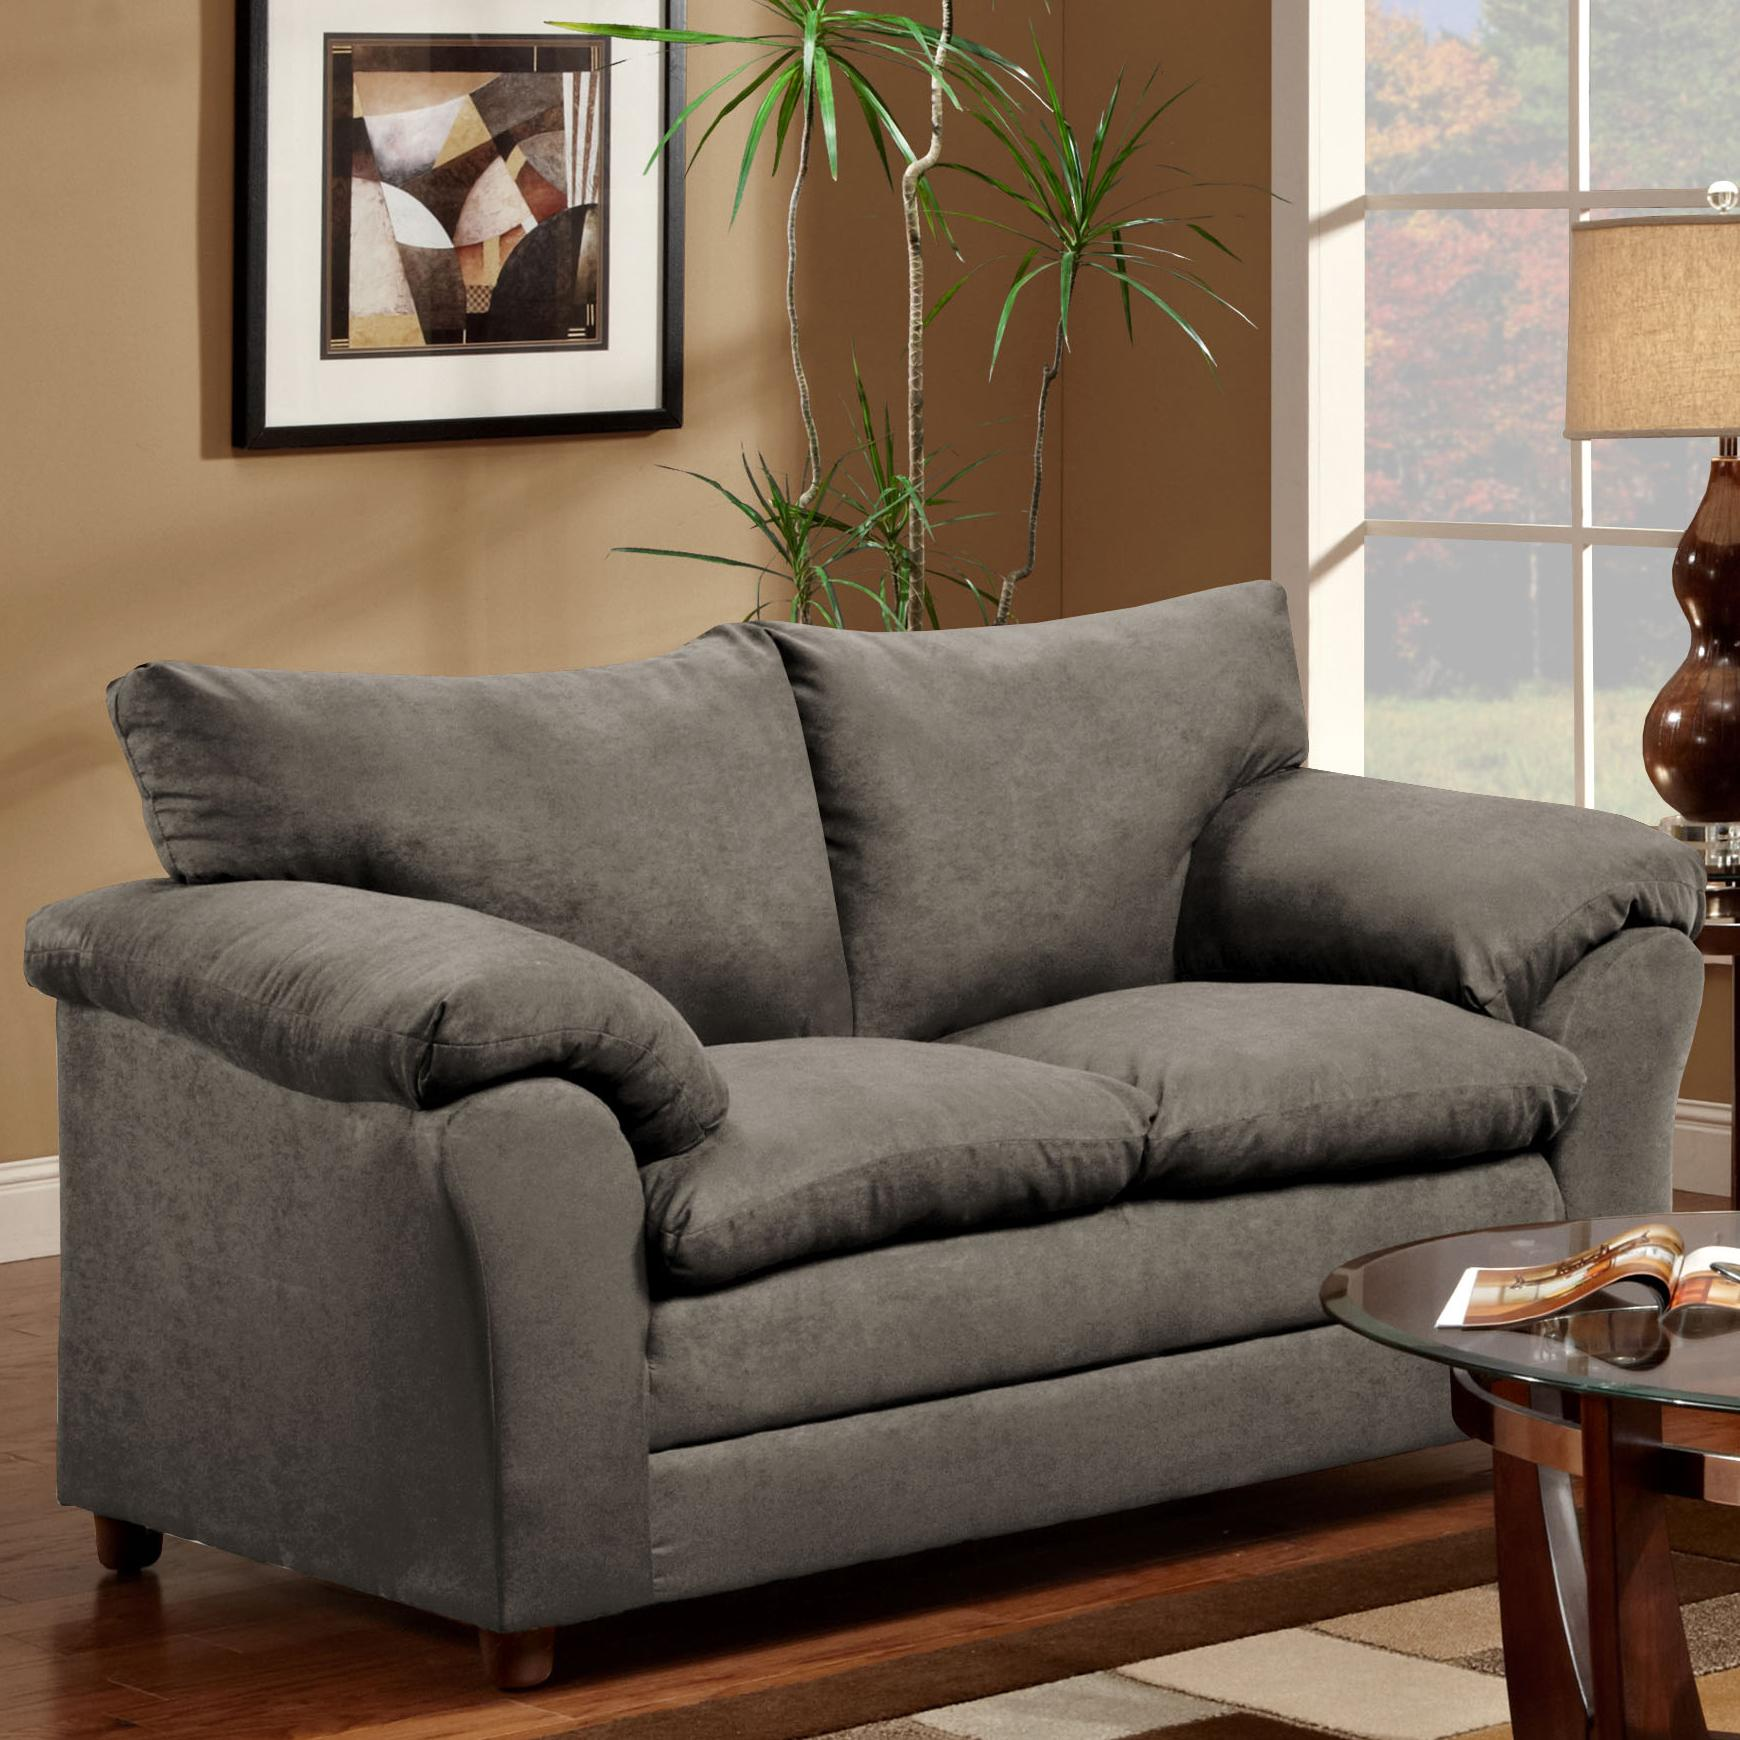 Washington Furniture 1150 Loveseat - Item Number: 1150-LS Graphite